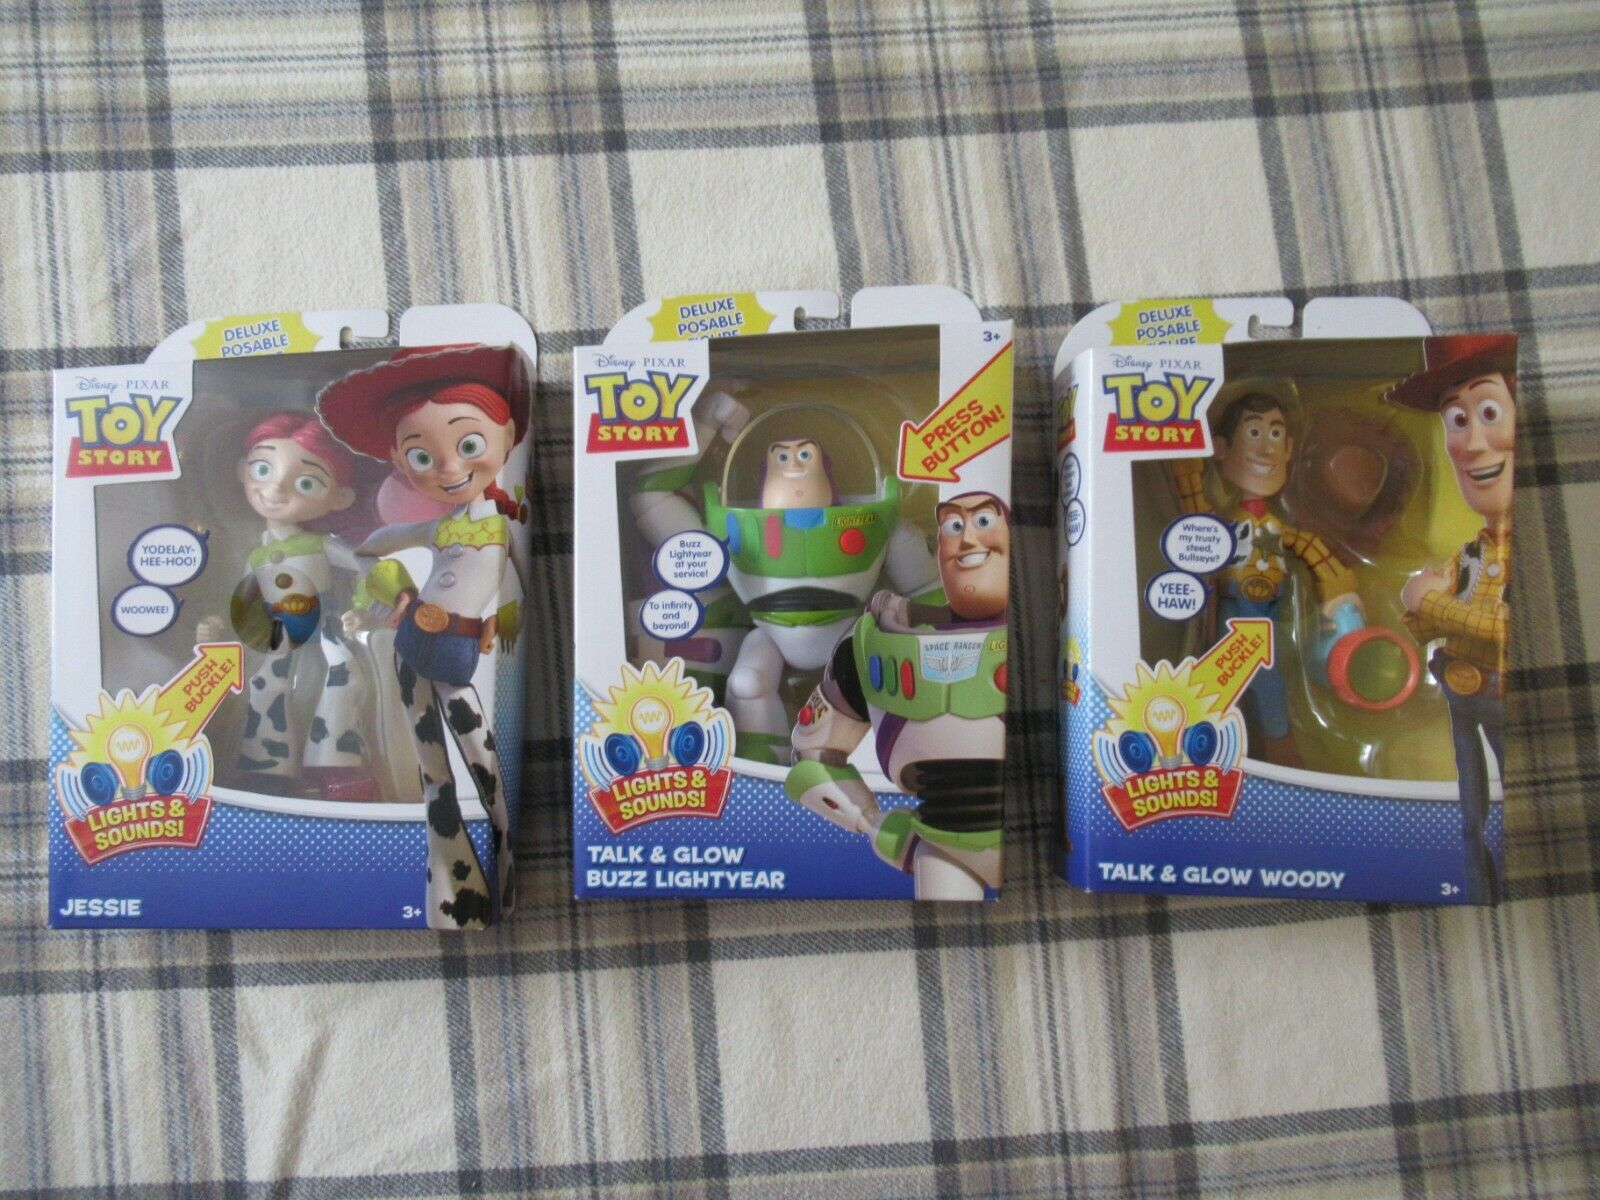 Toy Story  7  Deluxe Figures - LIGHTS & SOUNDS - Talk & Glow ( Full Set of 3 )